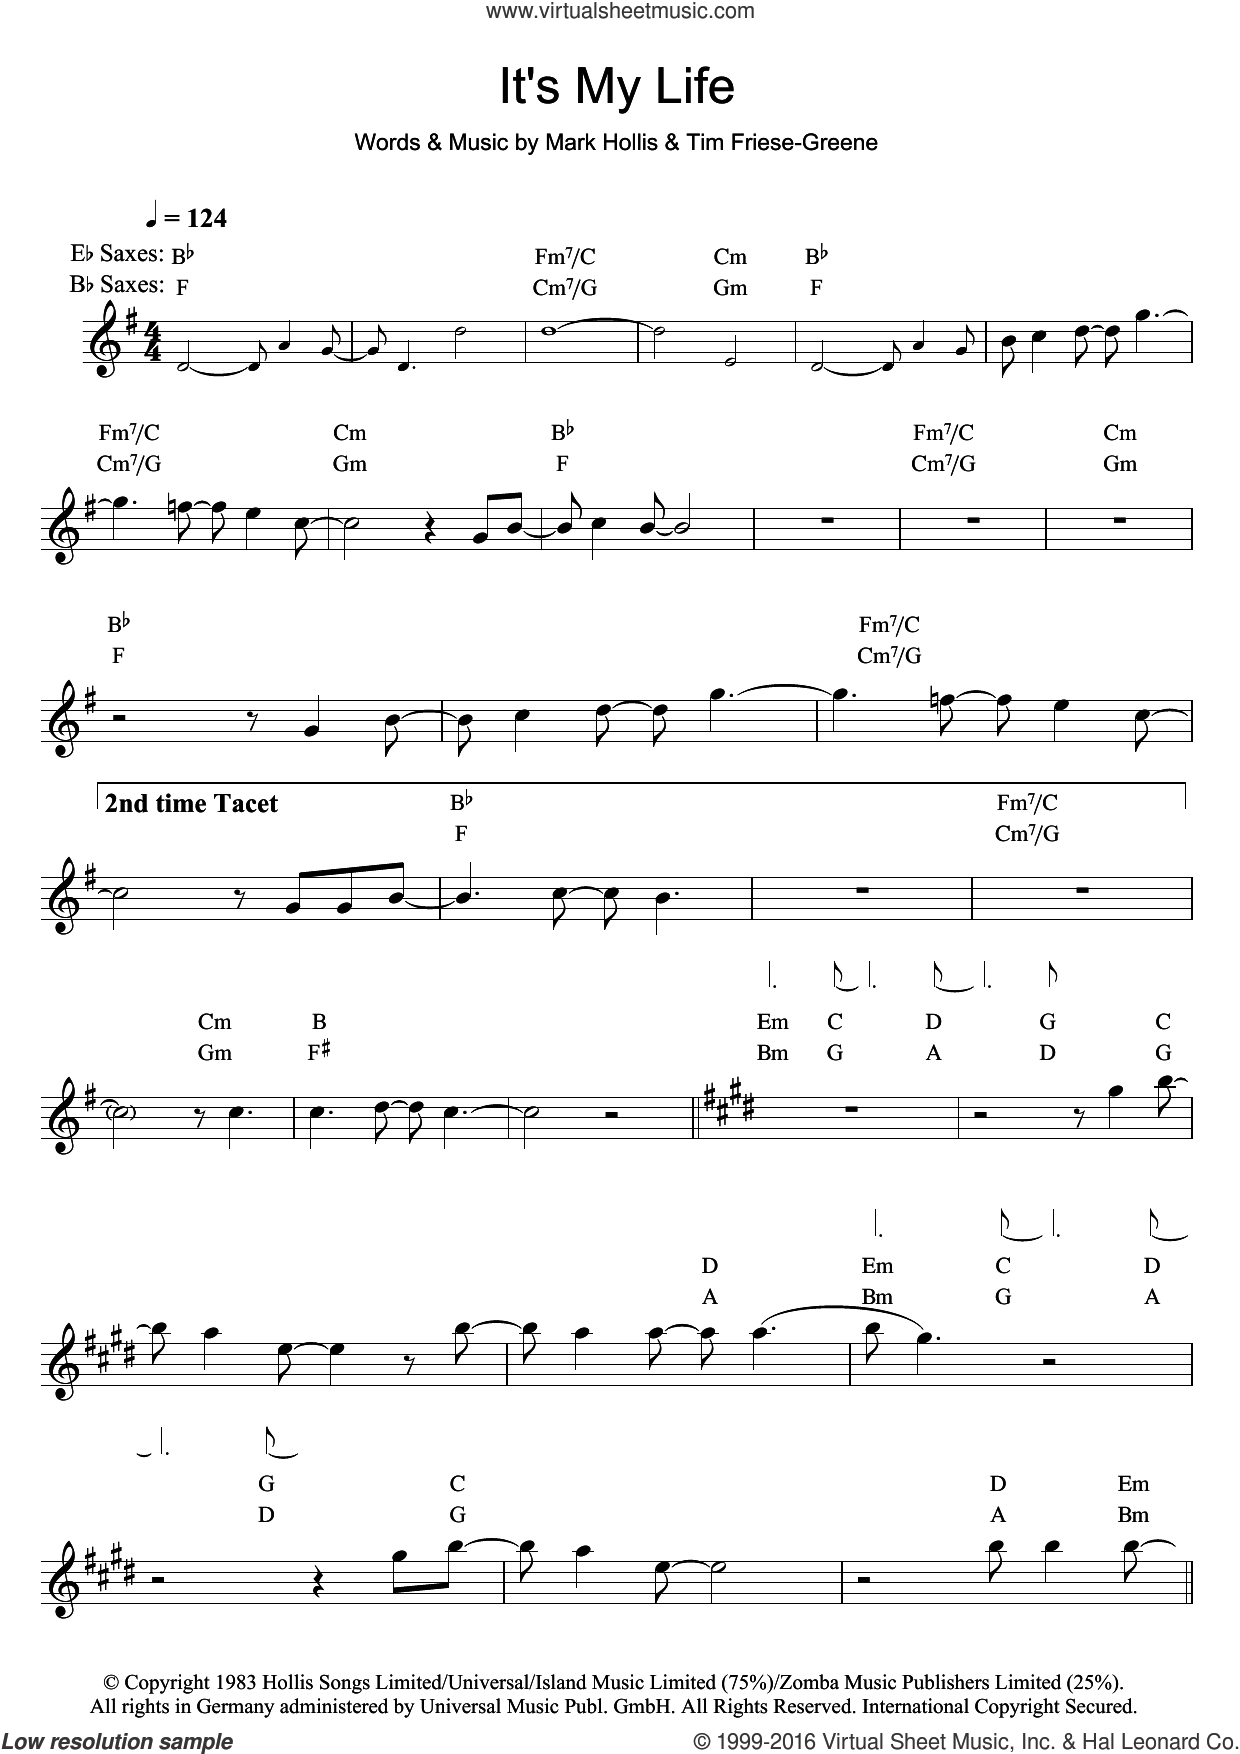 It's My Life sheet music for saxophone solo by Talk Talk, Mark Hollis and Tim Friese-Greene, intermediate skill level